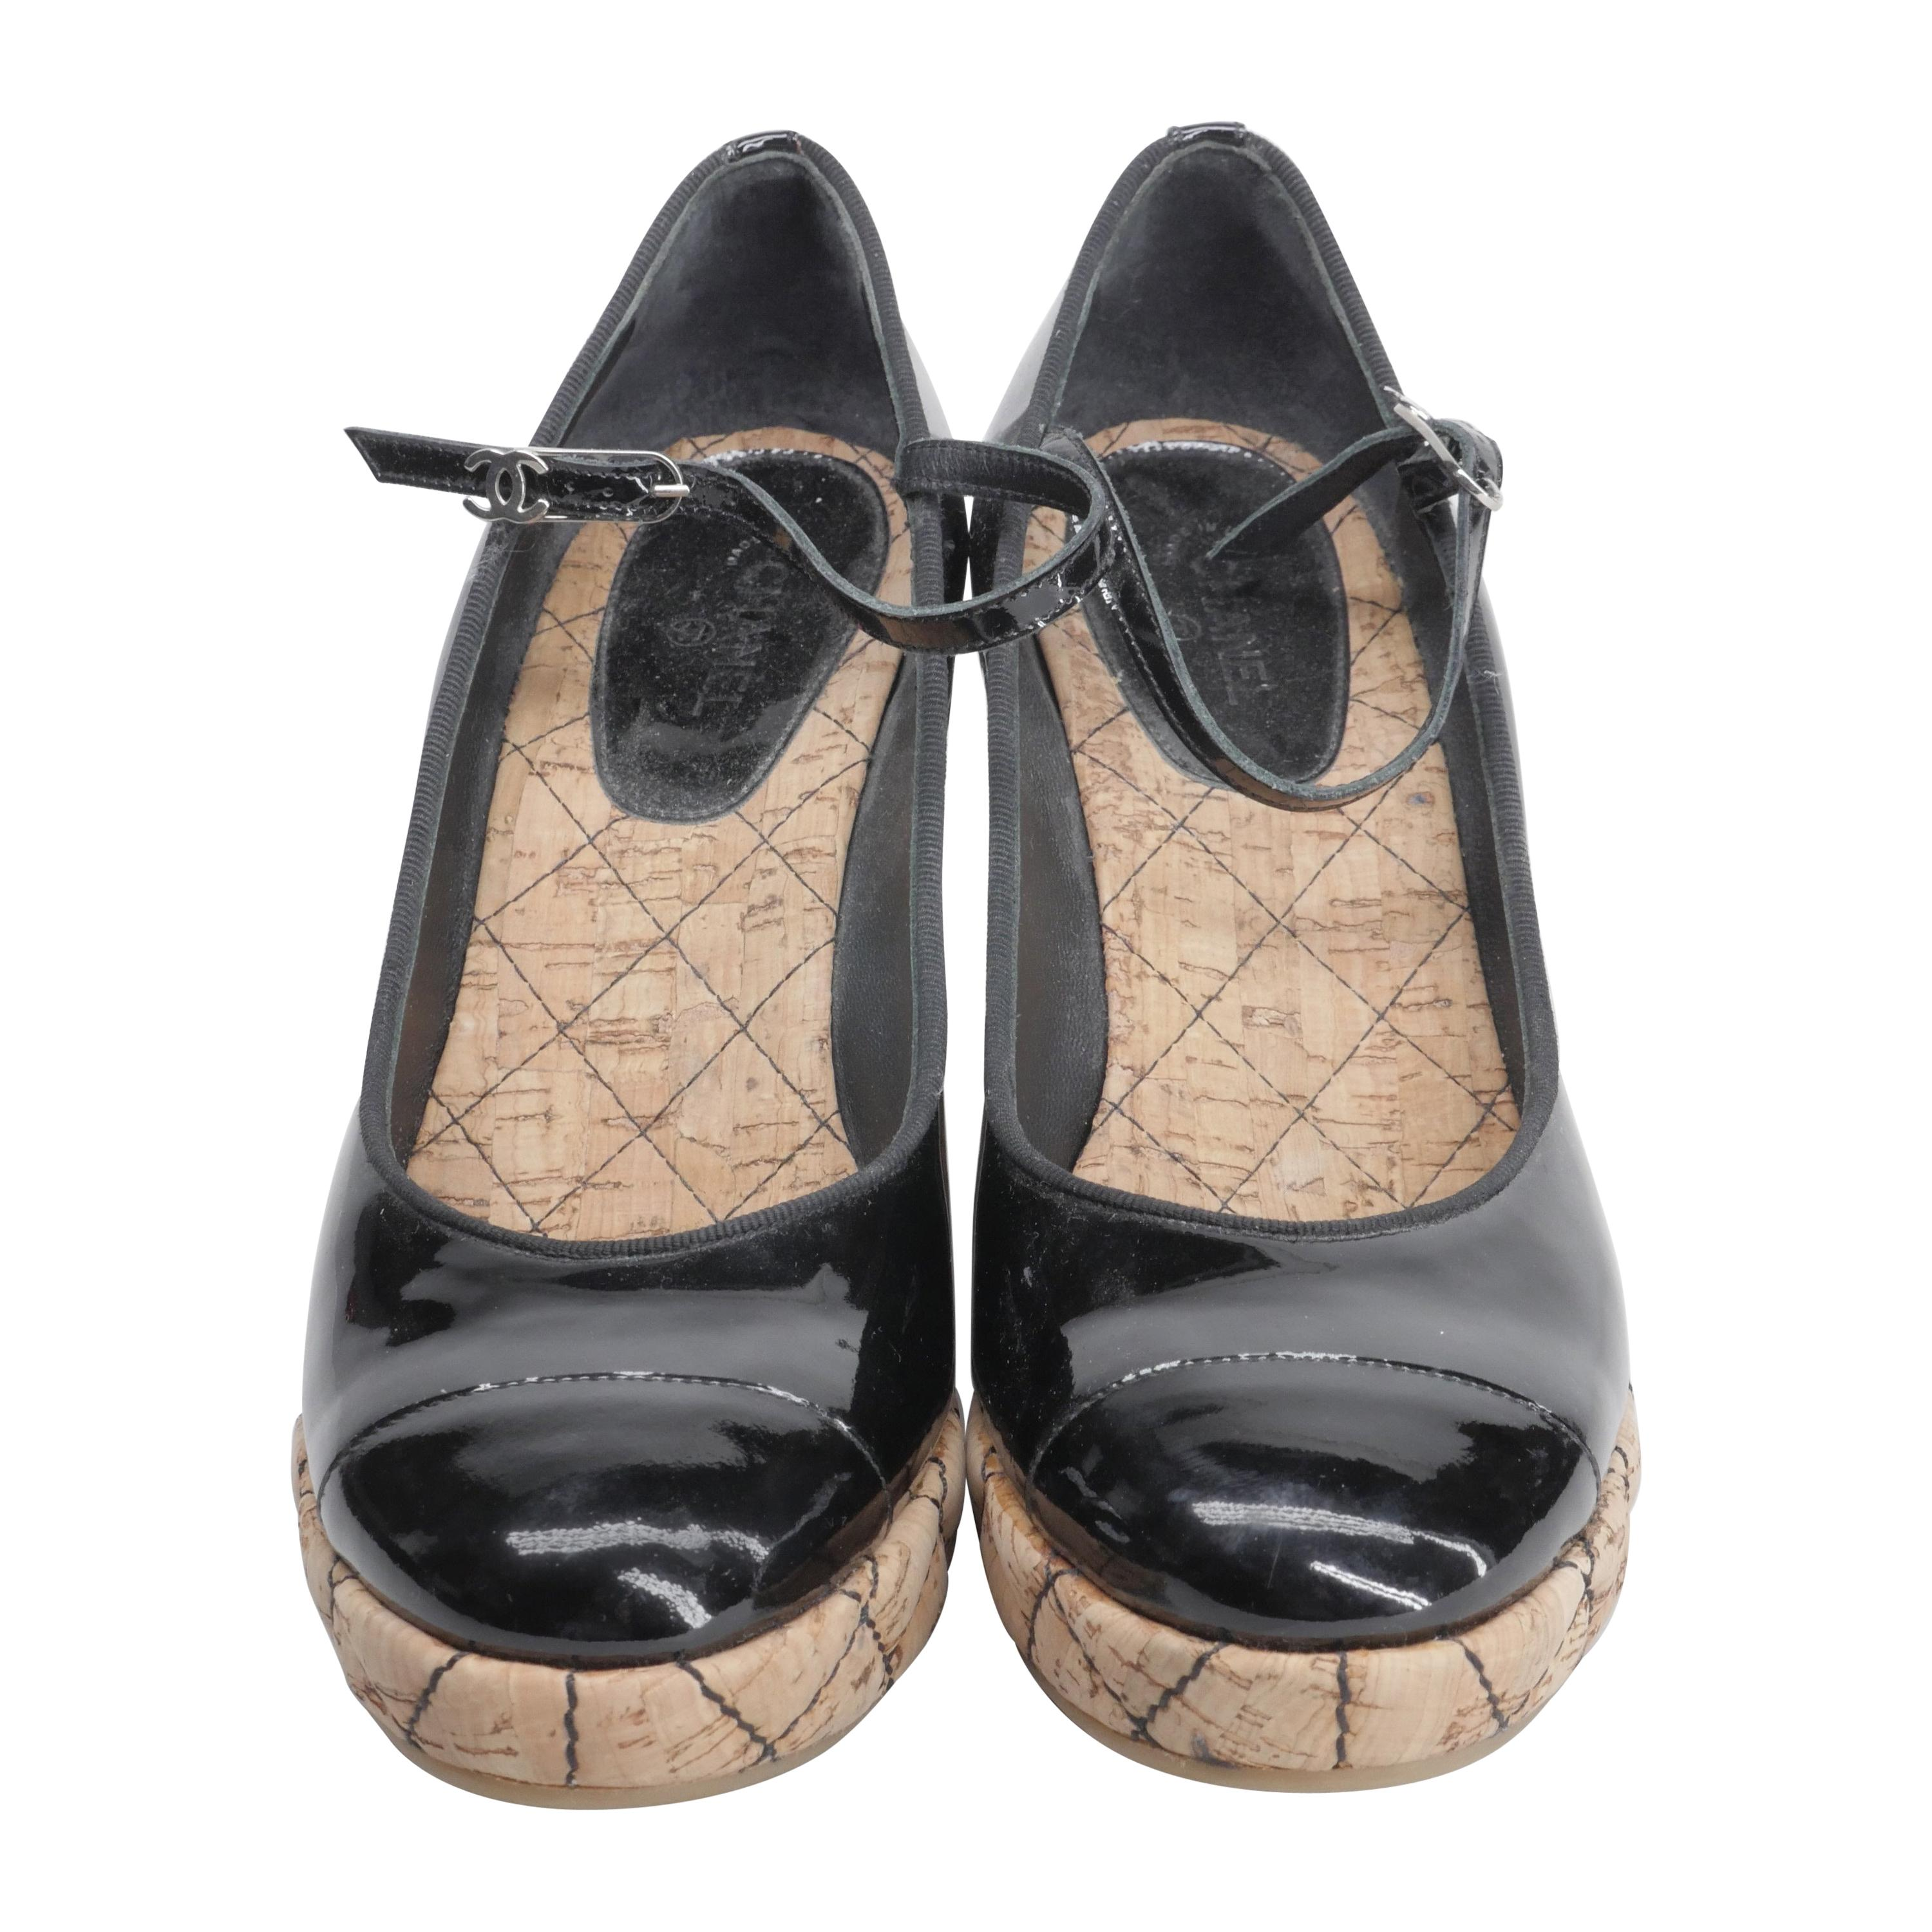 Chanel Black Patent Leather Wedges Size 41